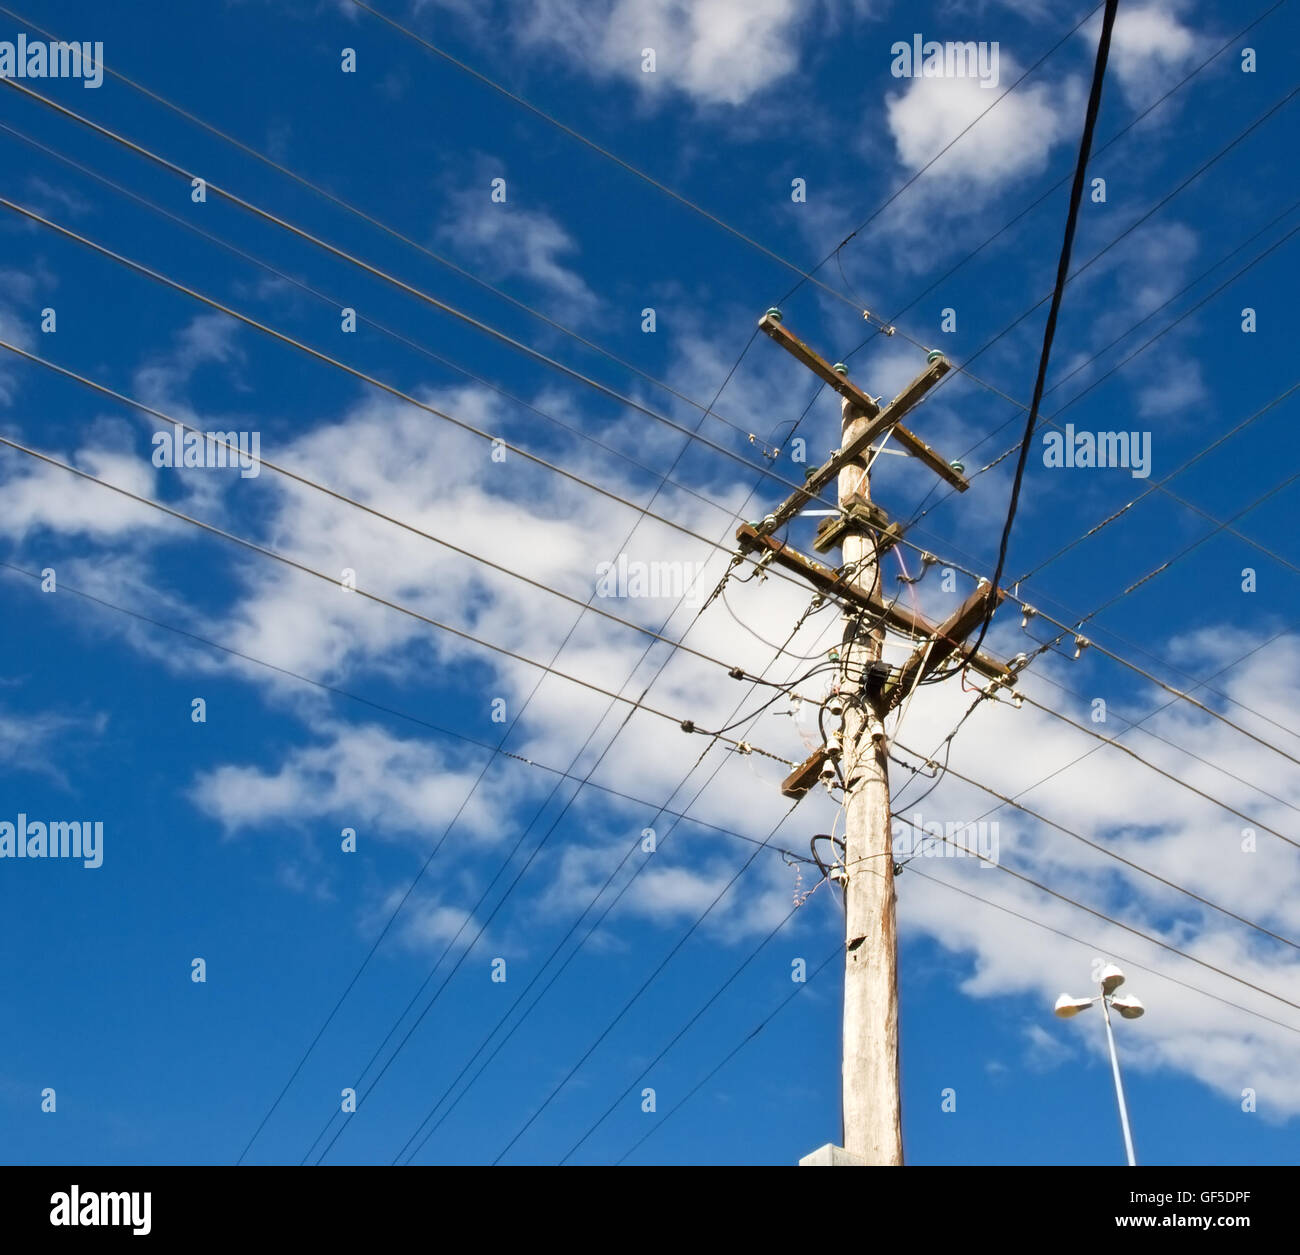 power lines for australian power pole electricity grid against cloudy blue sky - Stock Image